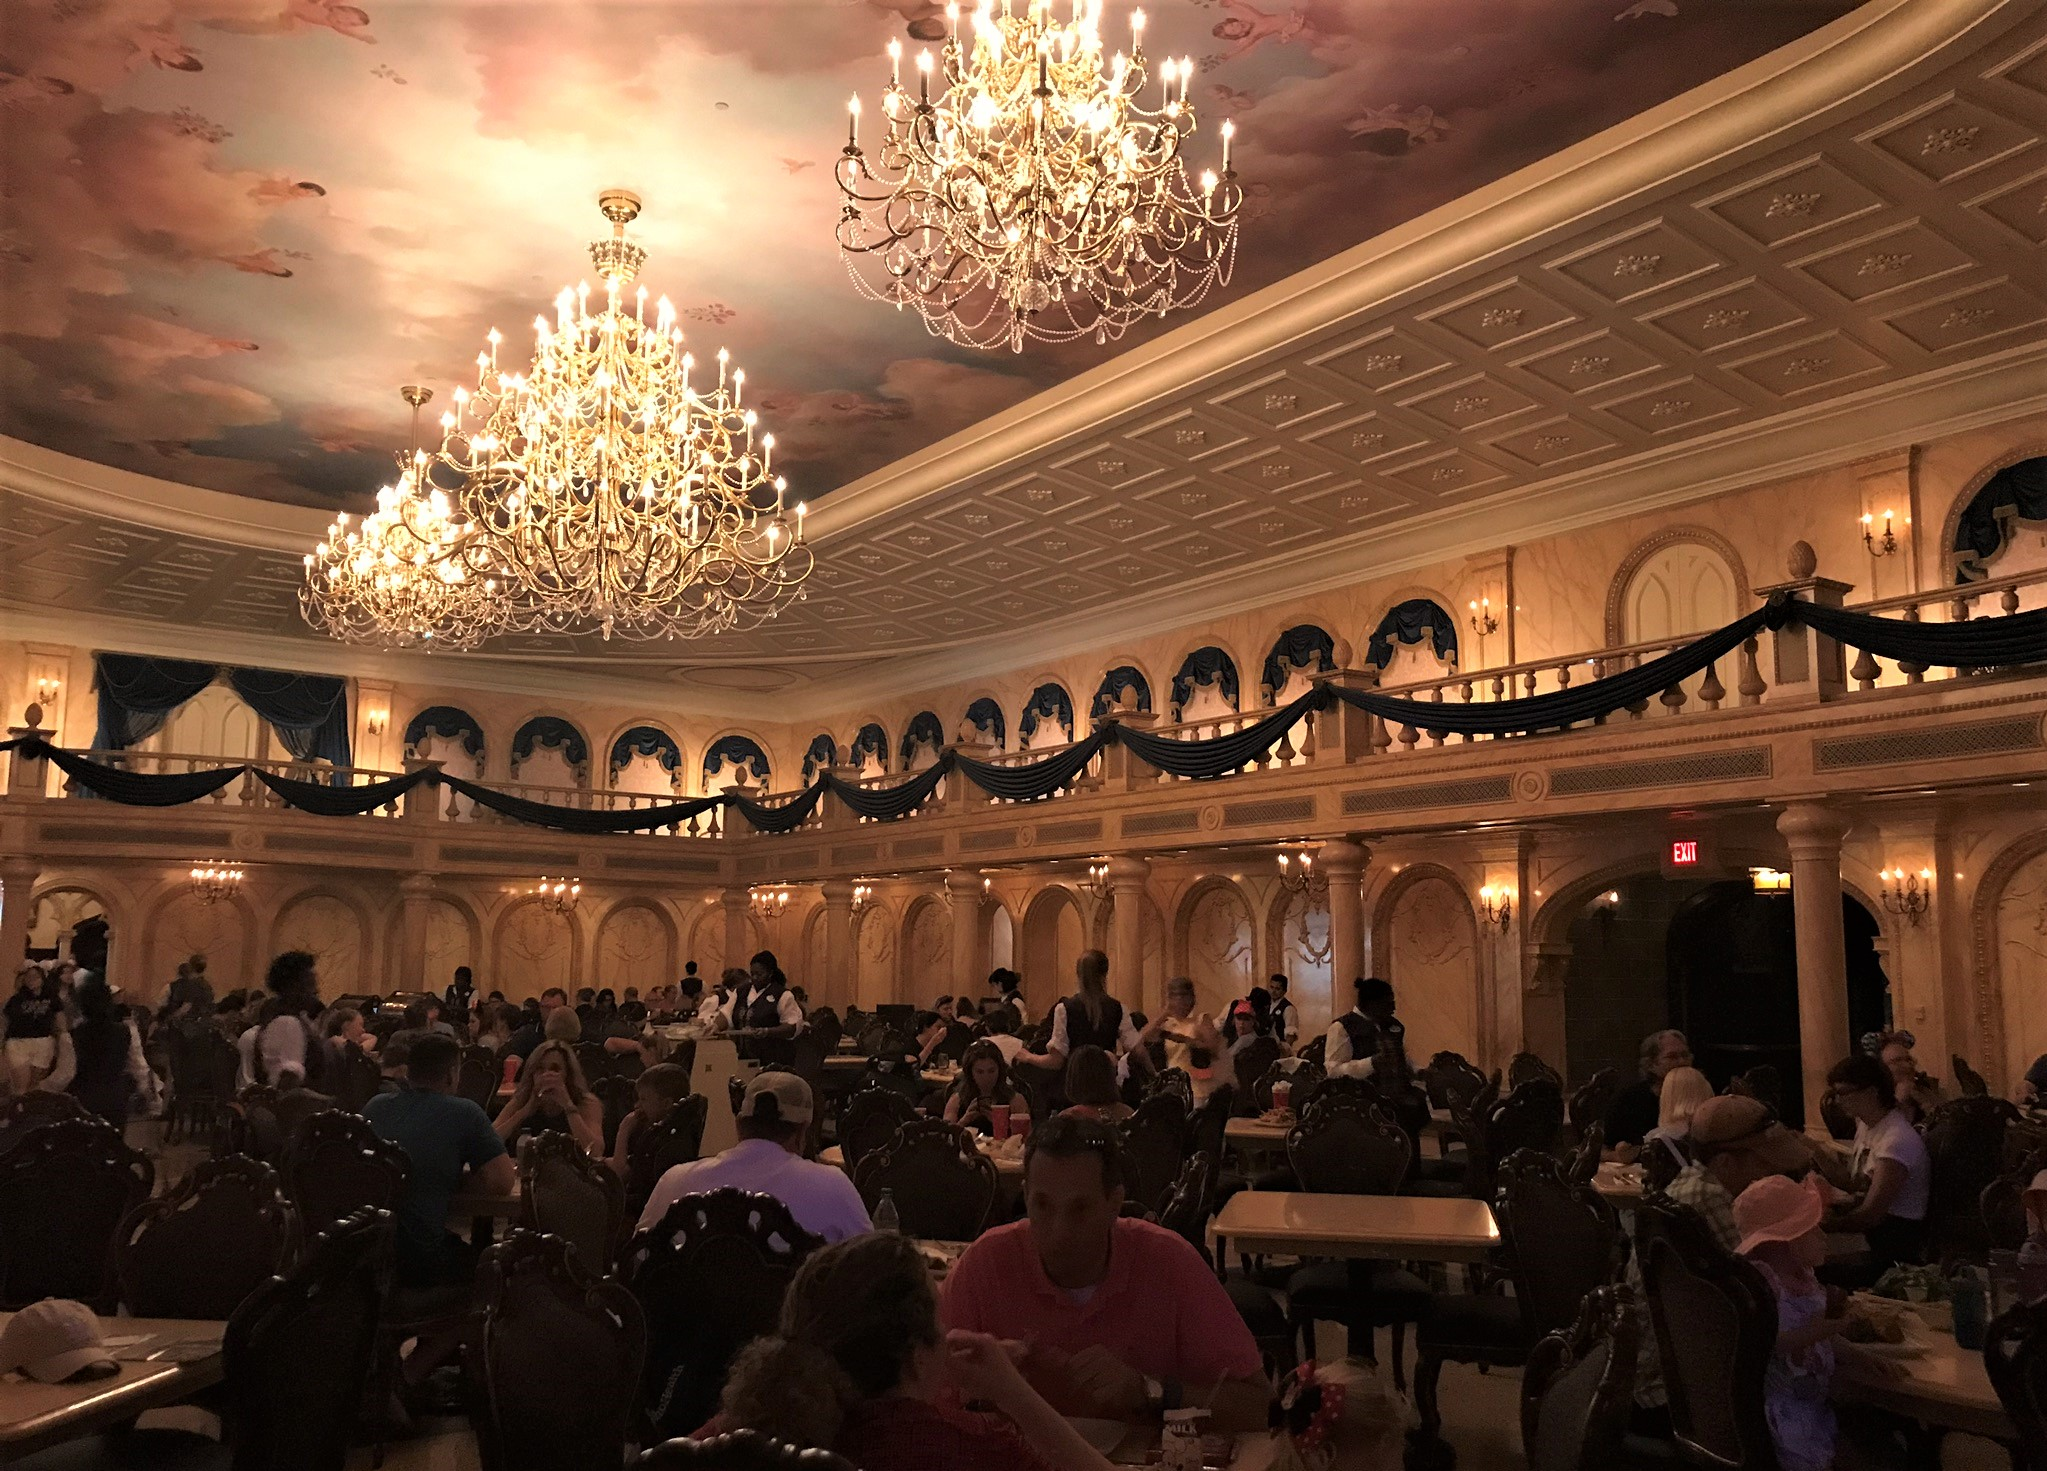 grand ballroom at be our guest restaurant - best quick service magic kingdom restaurant